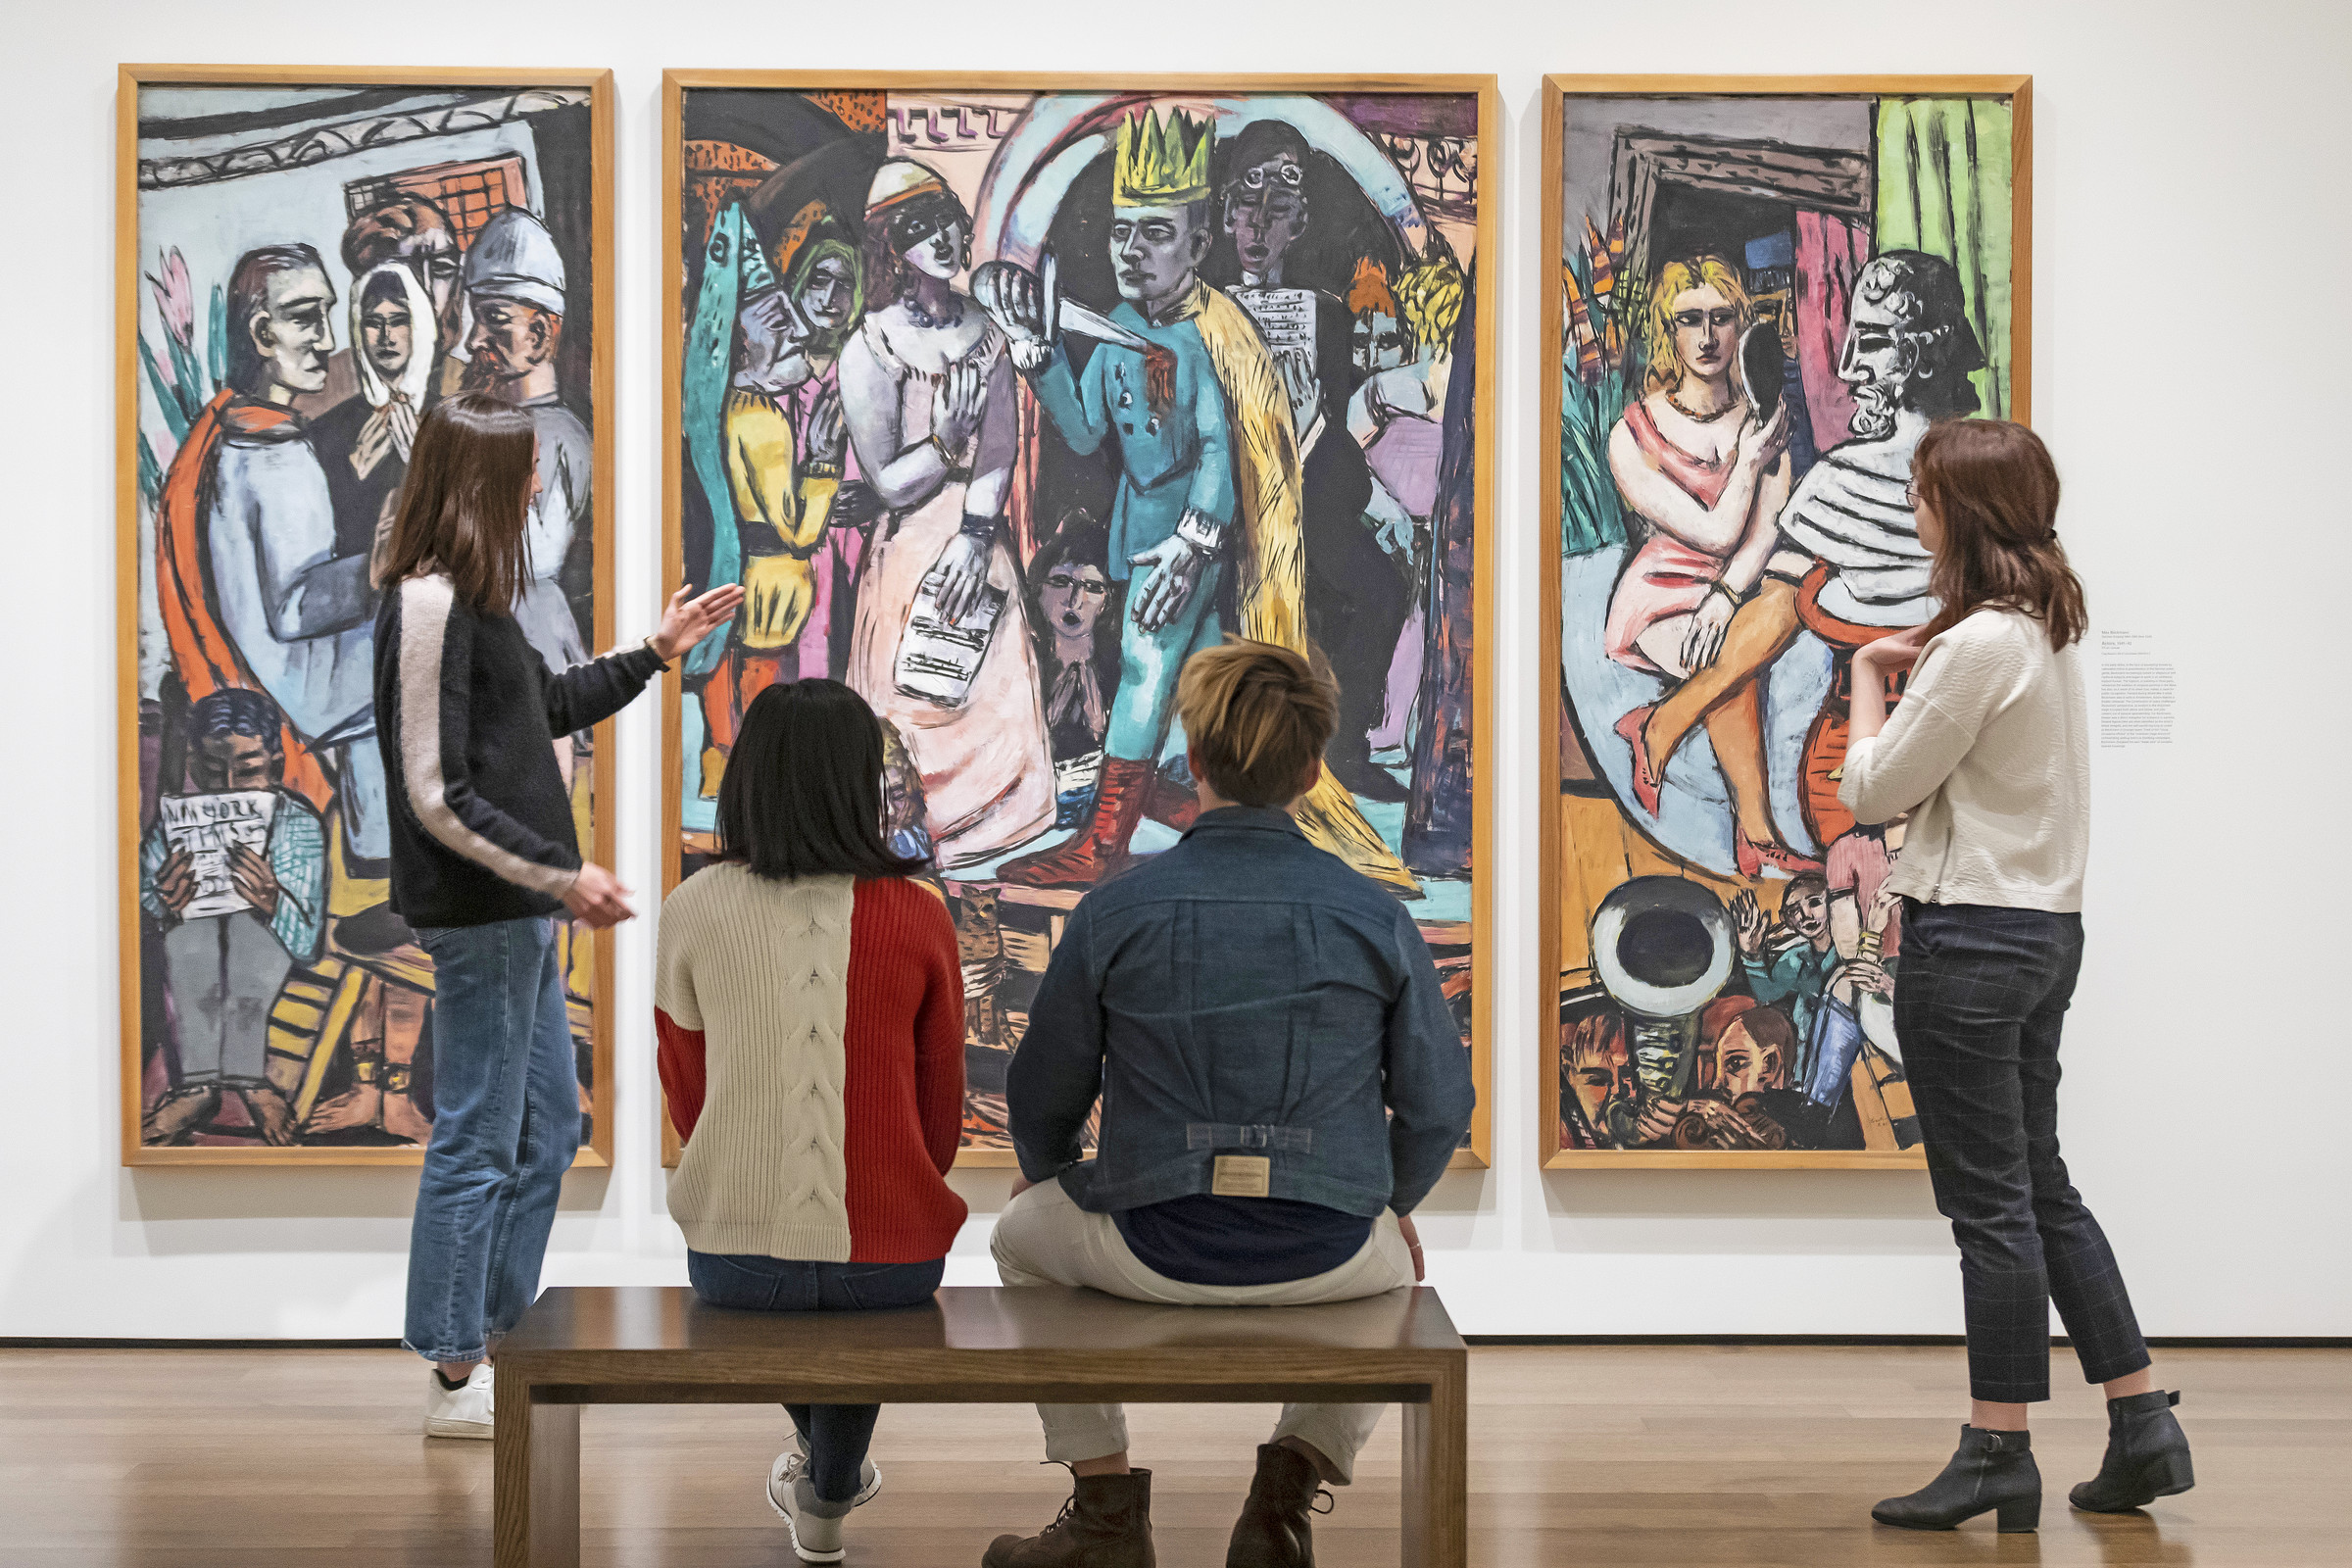 At left, a young woman gestures in front of a large expressionist triptych painting. Two people sit on a bench with their backs to the viewer, and a young person is standing at far right. The painting shows many colorful, shadowy figures in a performance.